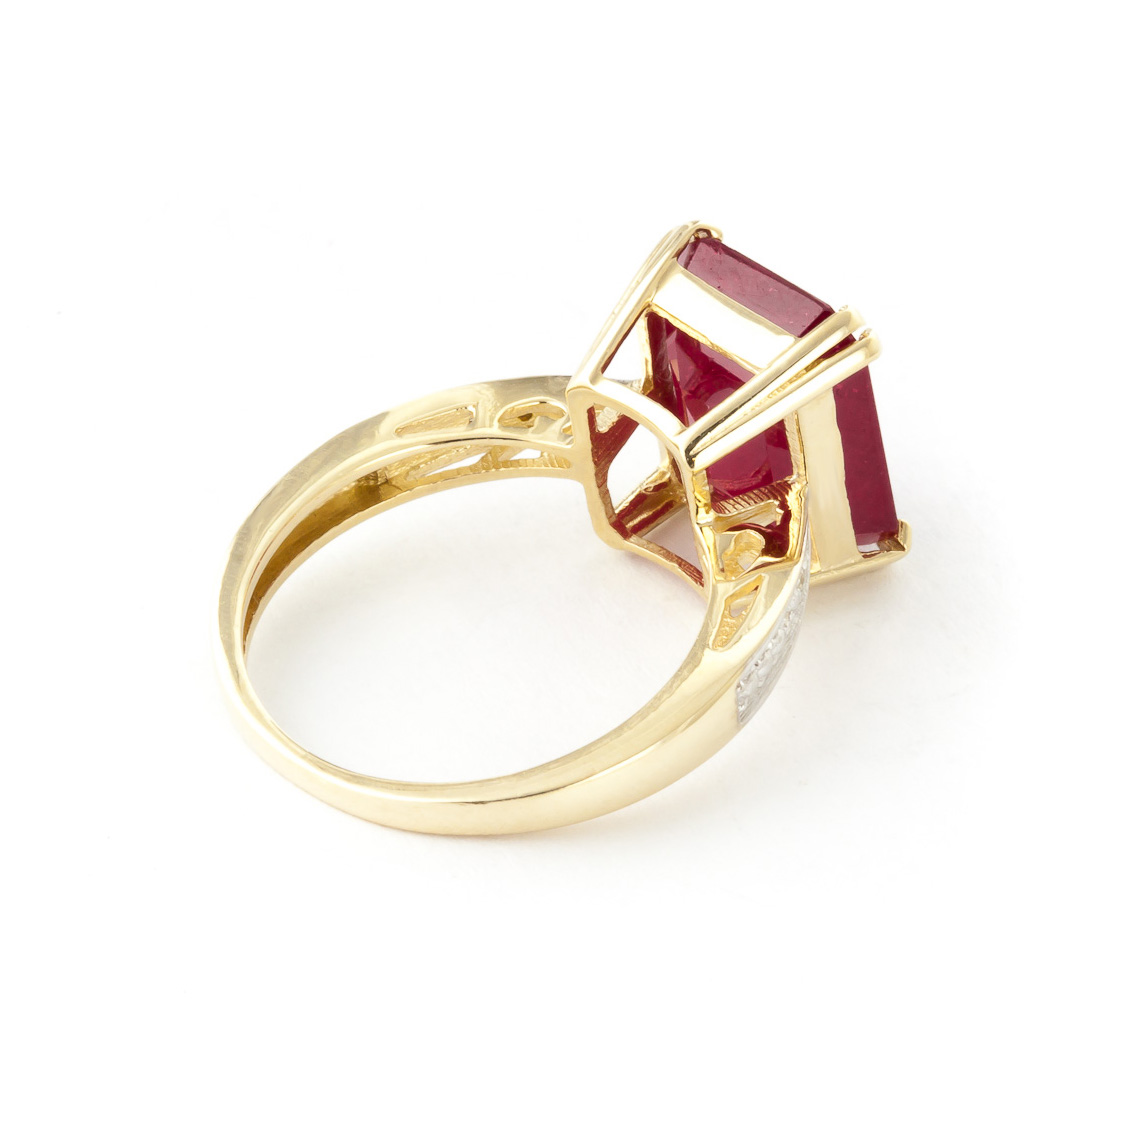 Octagon Cut Ruby Ring 7.27 ctw in 9ct Gold